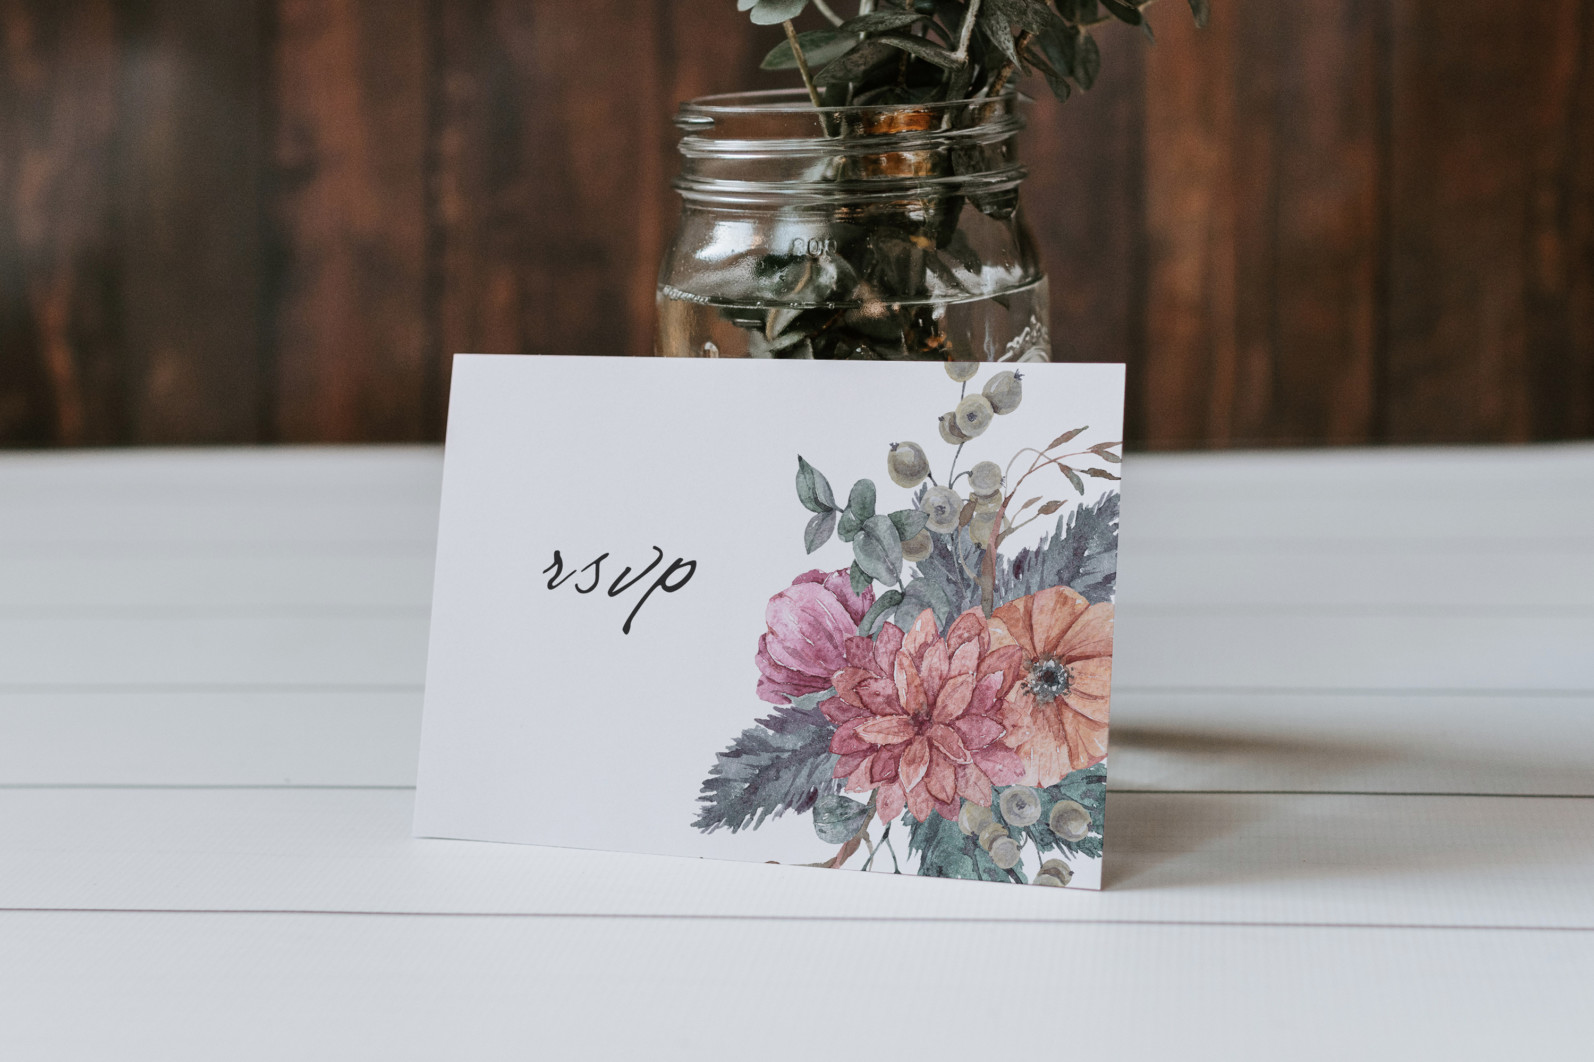 Floral bouquets sublimation / clipart- 3 png files - Free Card Placing on Wooden Table Mockup scaled -